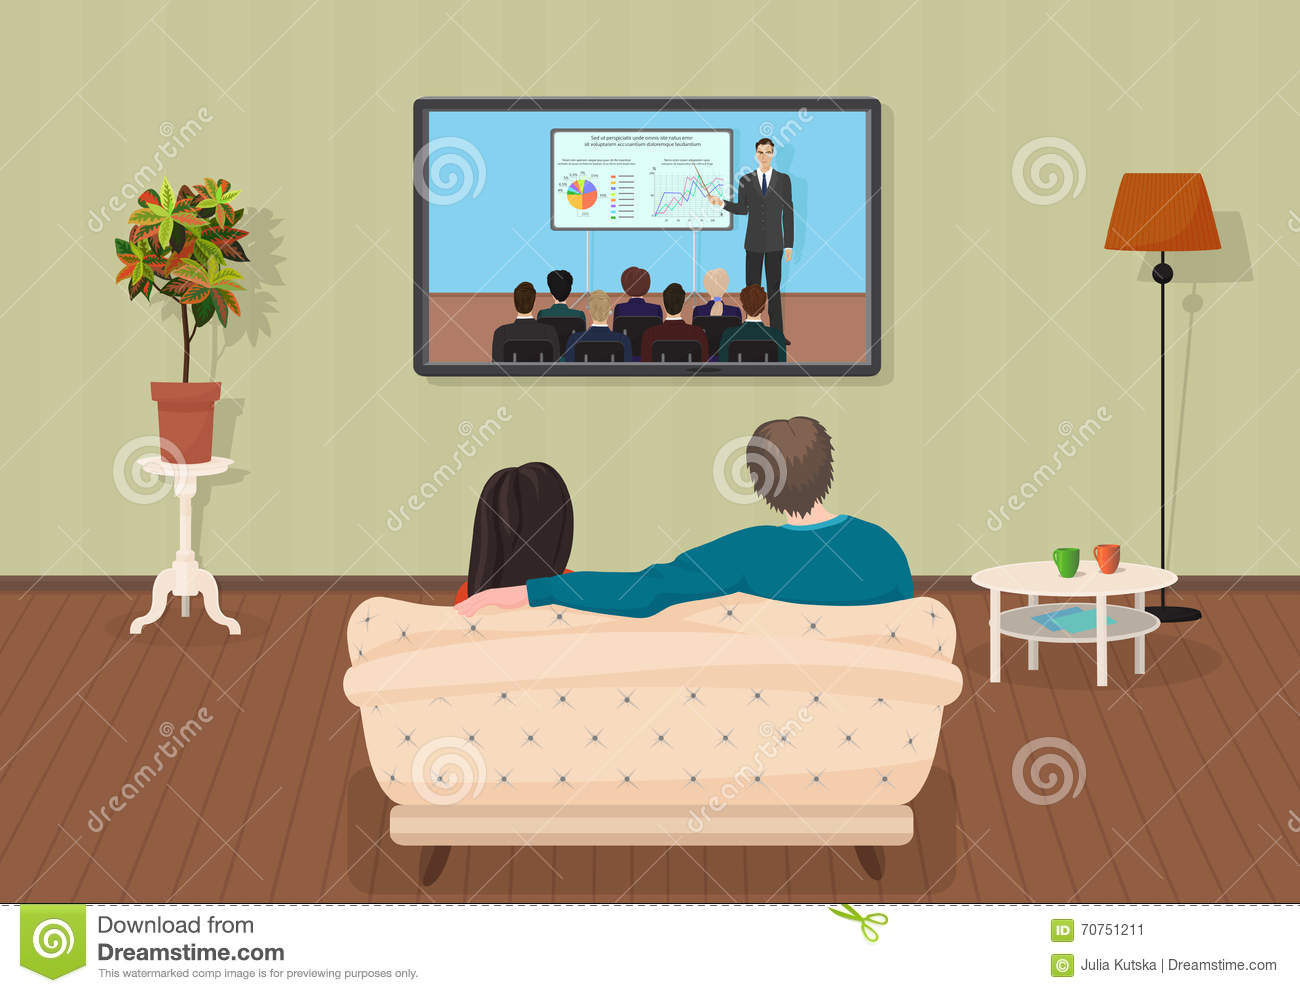 Young Family Man And Women Watching Tv Training Tutorial Program Together In The Living Room